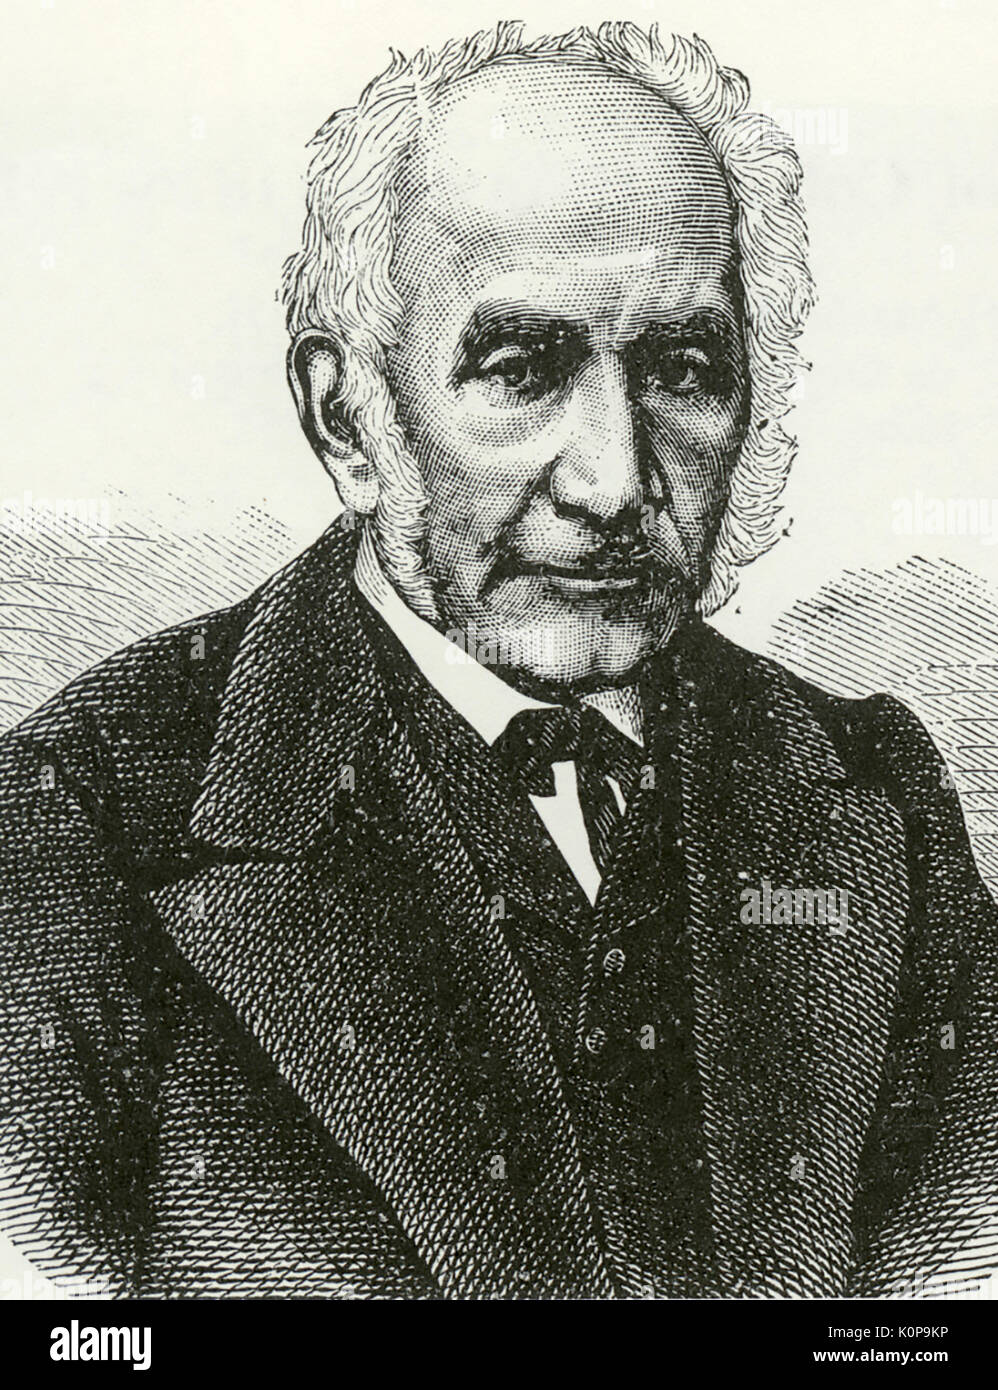 JULES GREVY (1807-1891) as President of the Third French Republic - Stock Image